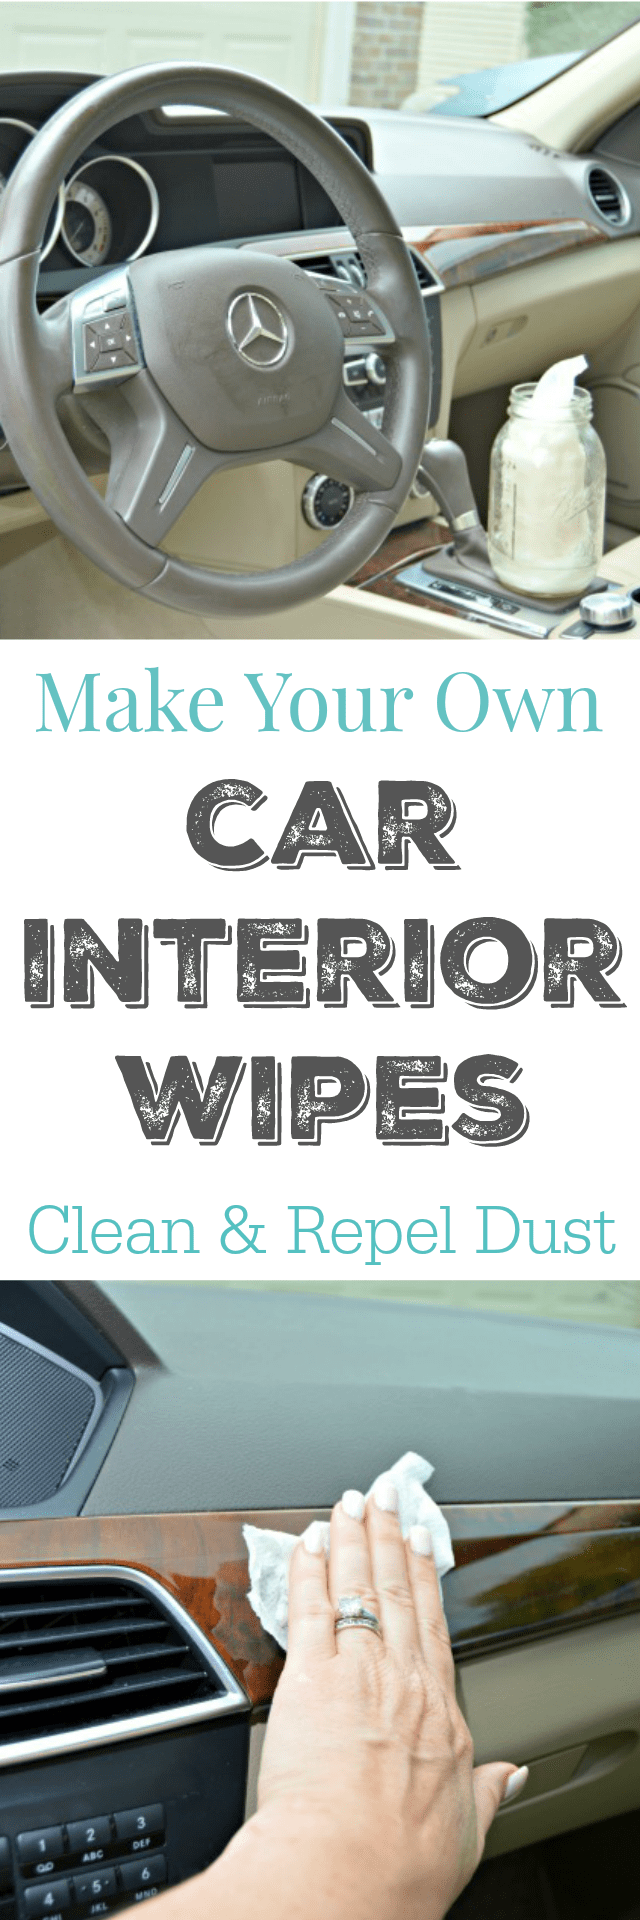 35+ 'Lazy' Hacks For People Who Love Keeping A Clean Car That Will Keep It Spotless #cleaningcars